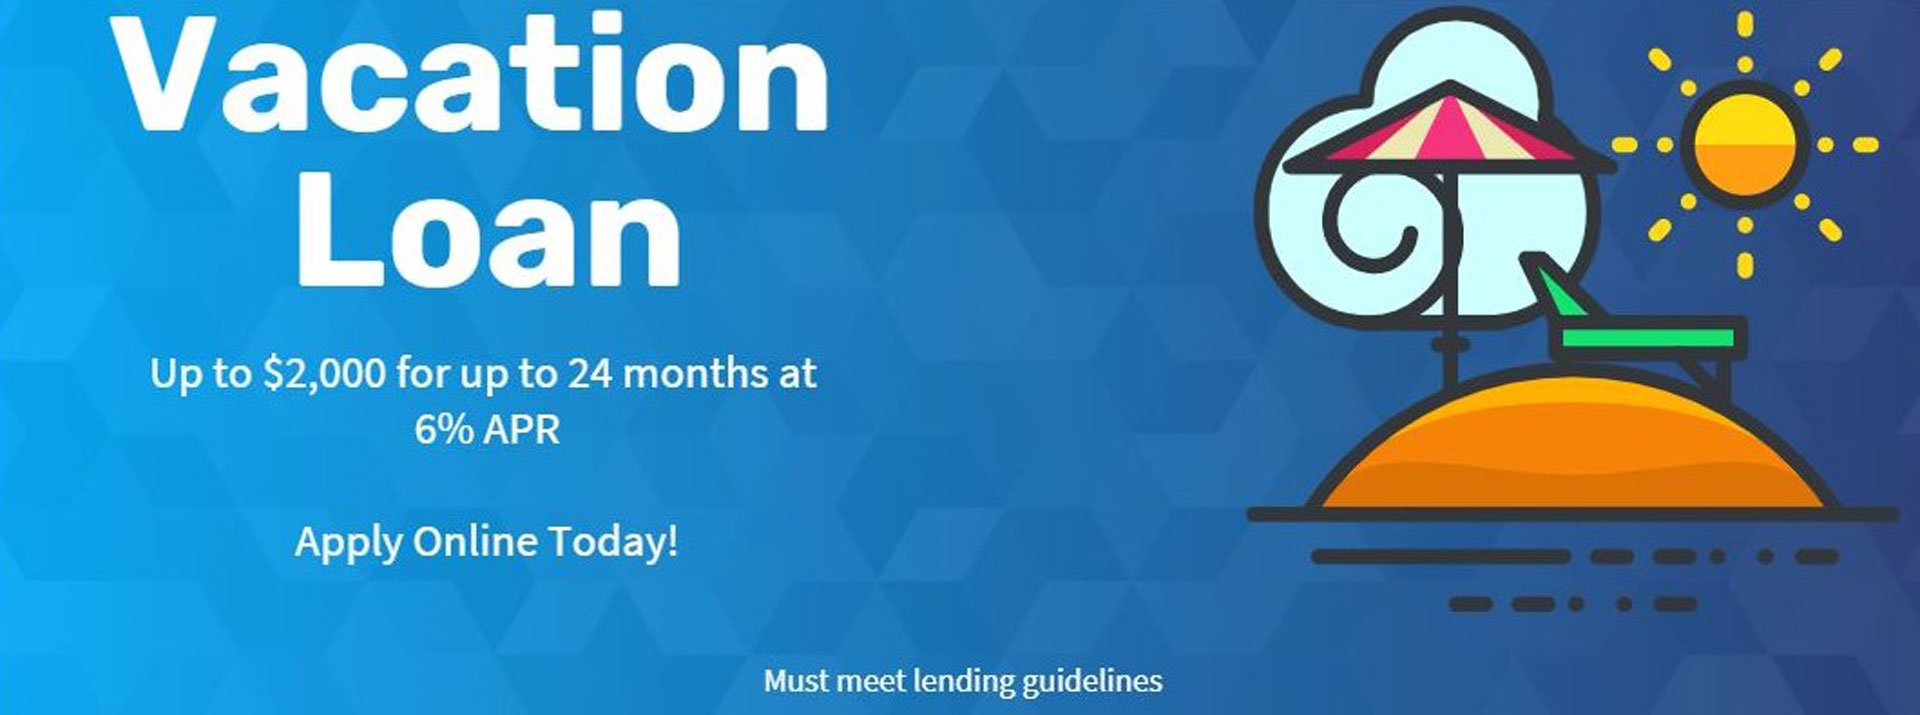 Vacation loans up to $2000 at 6% up to 24 months. Apply online today